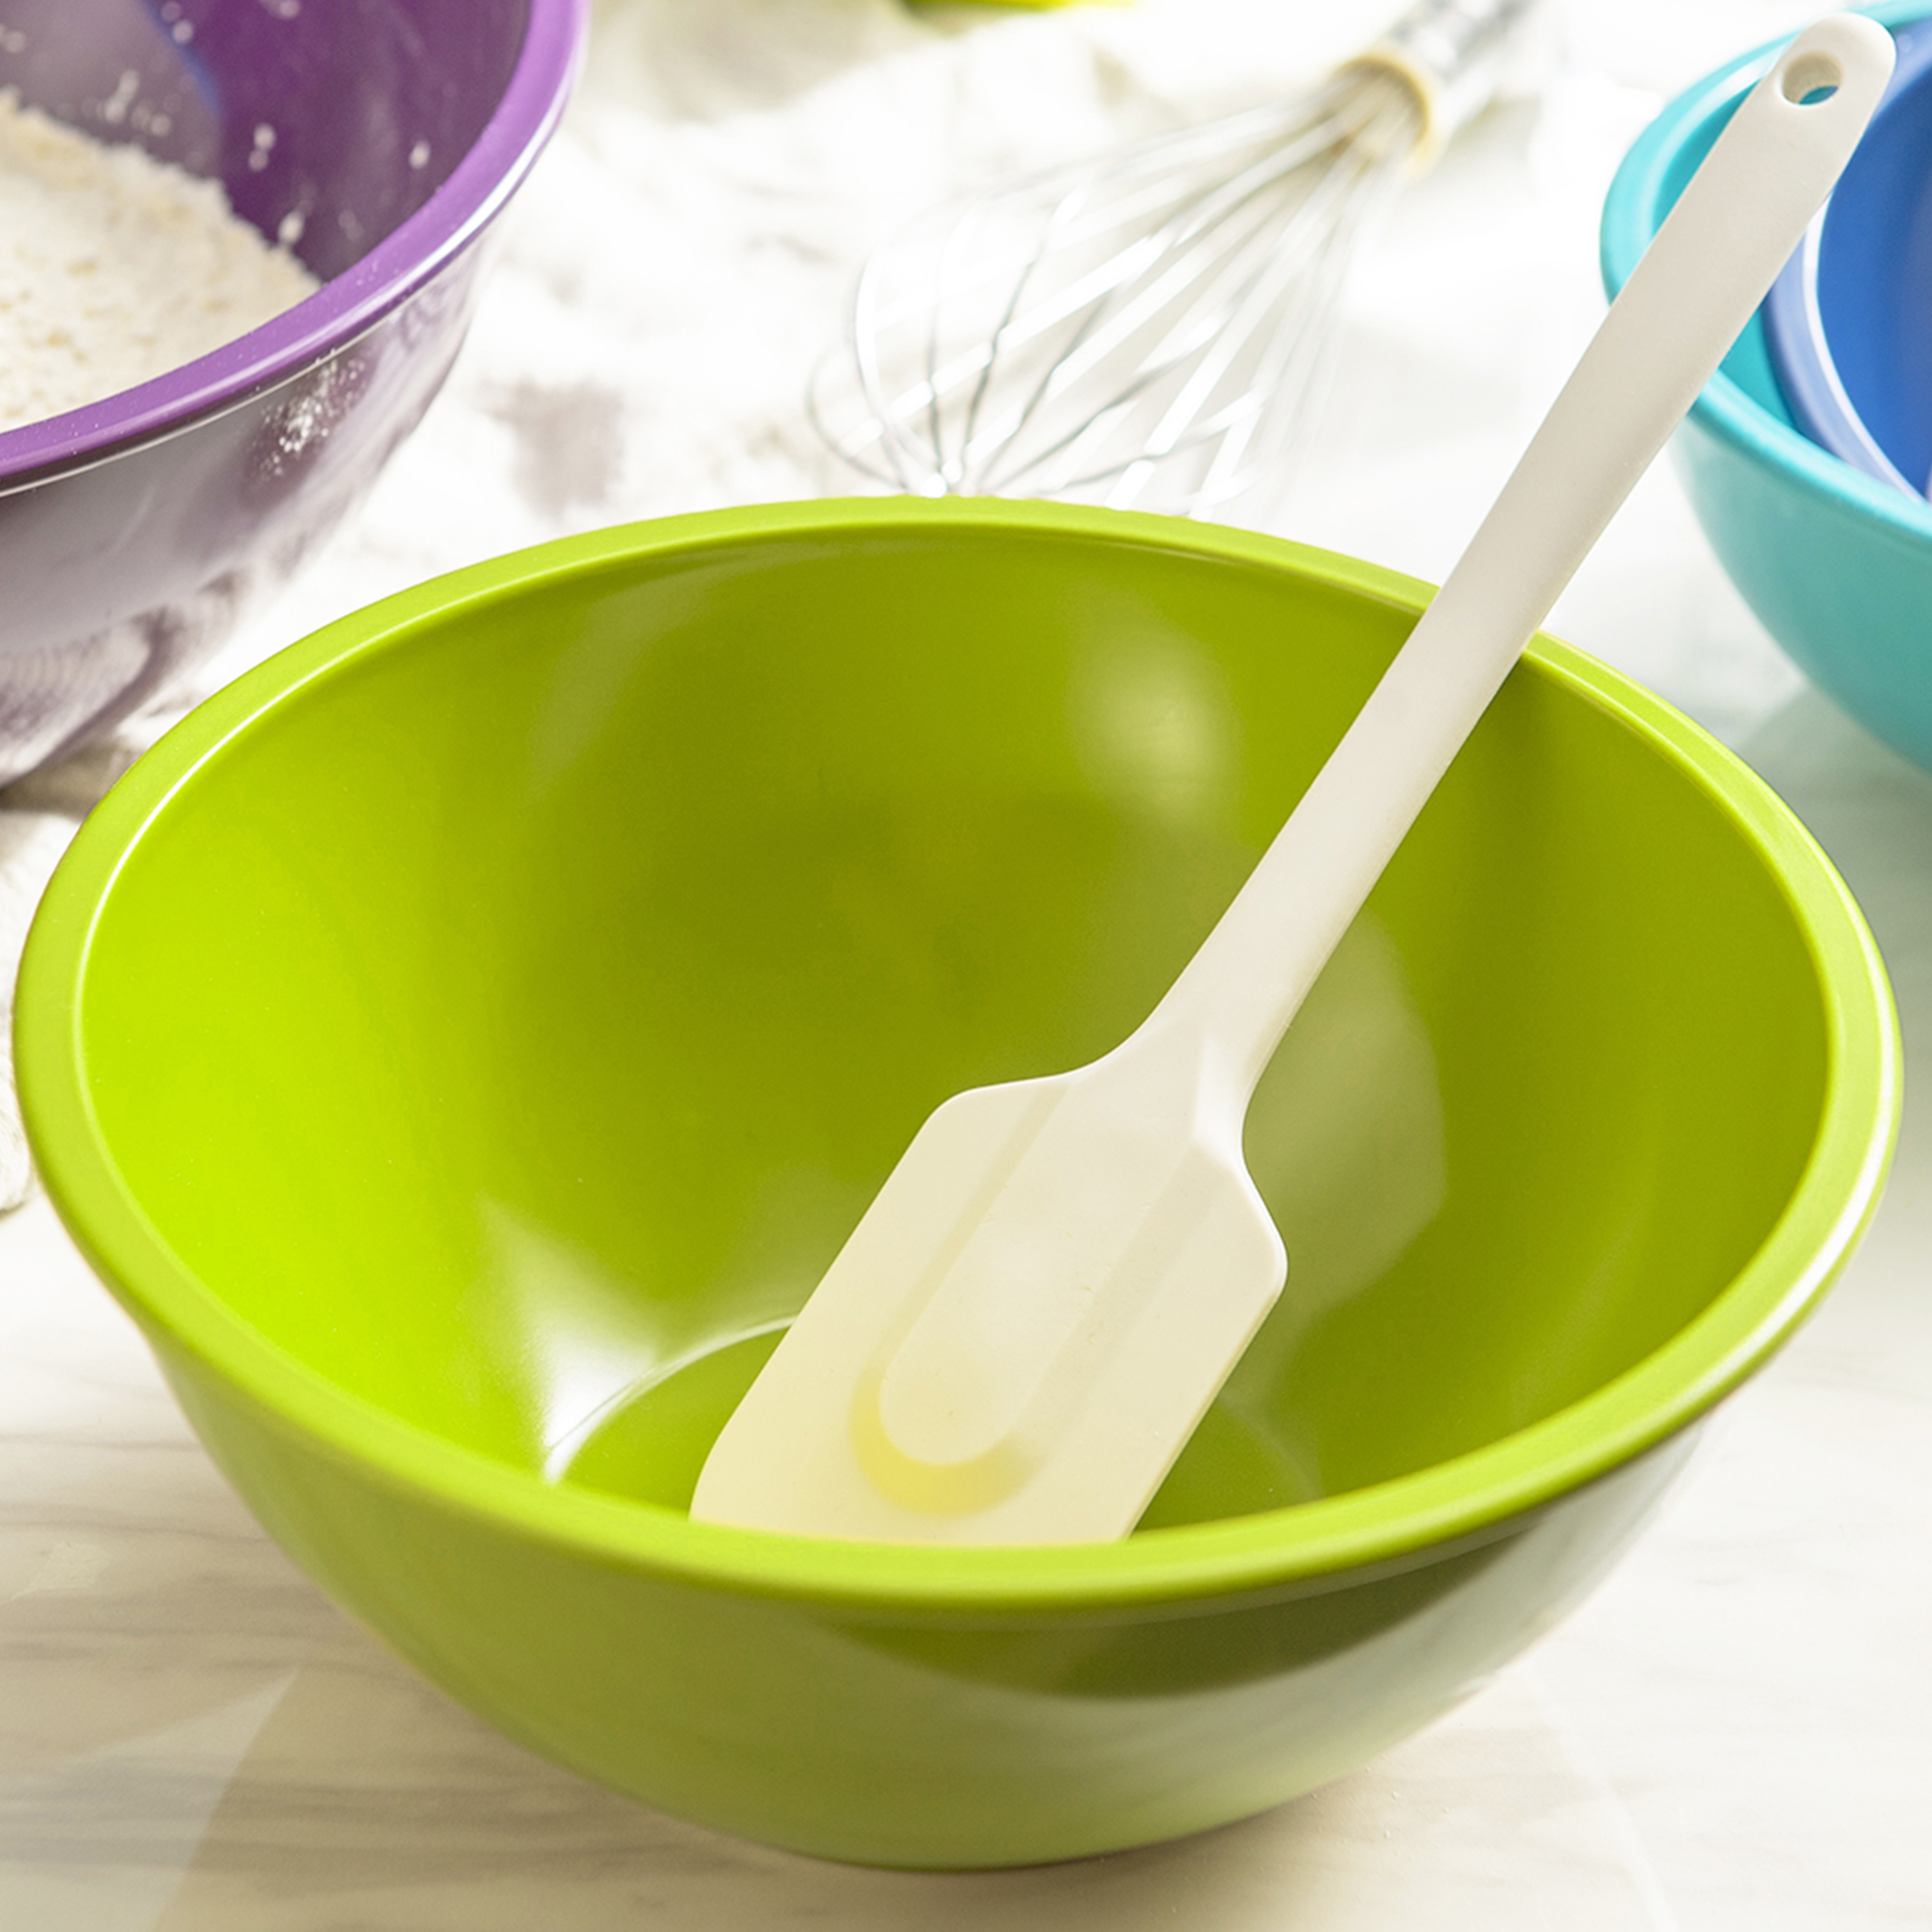 Colorway Plastic Serving and Mixing Bowl Set, Blue and Red, 5-piece set slideshow image 7